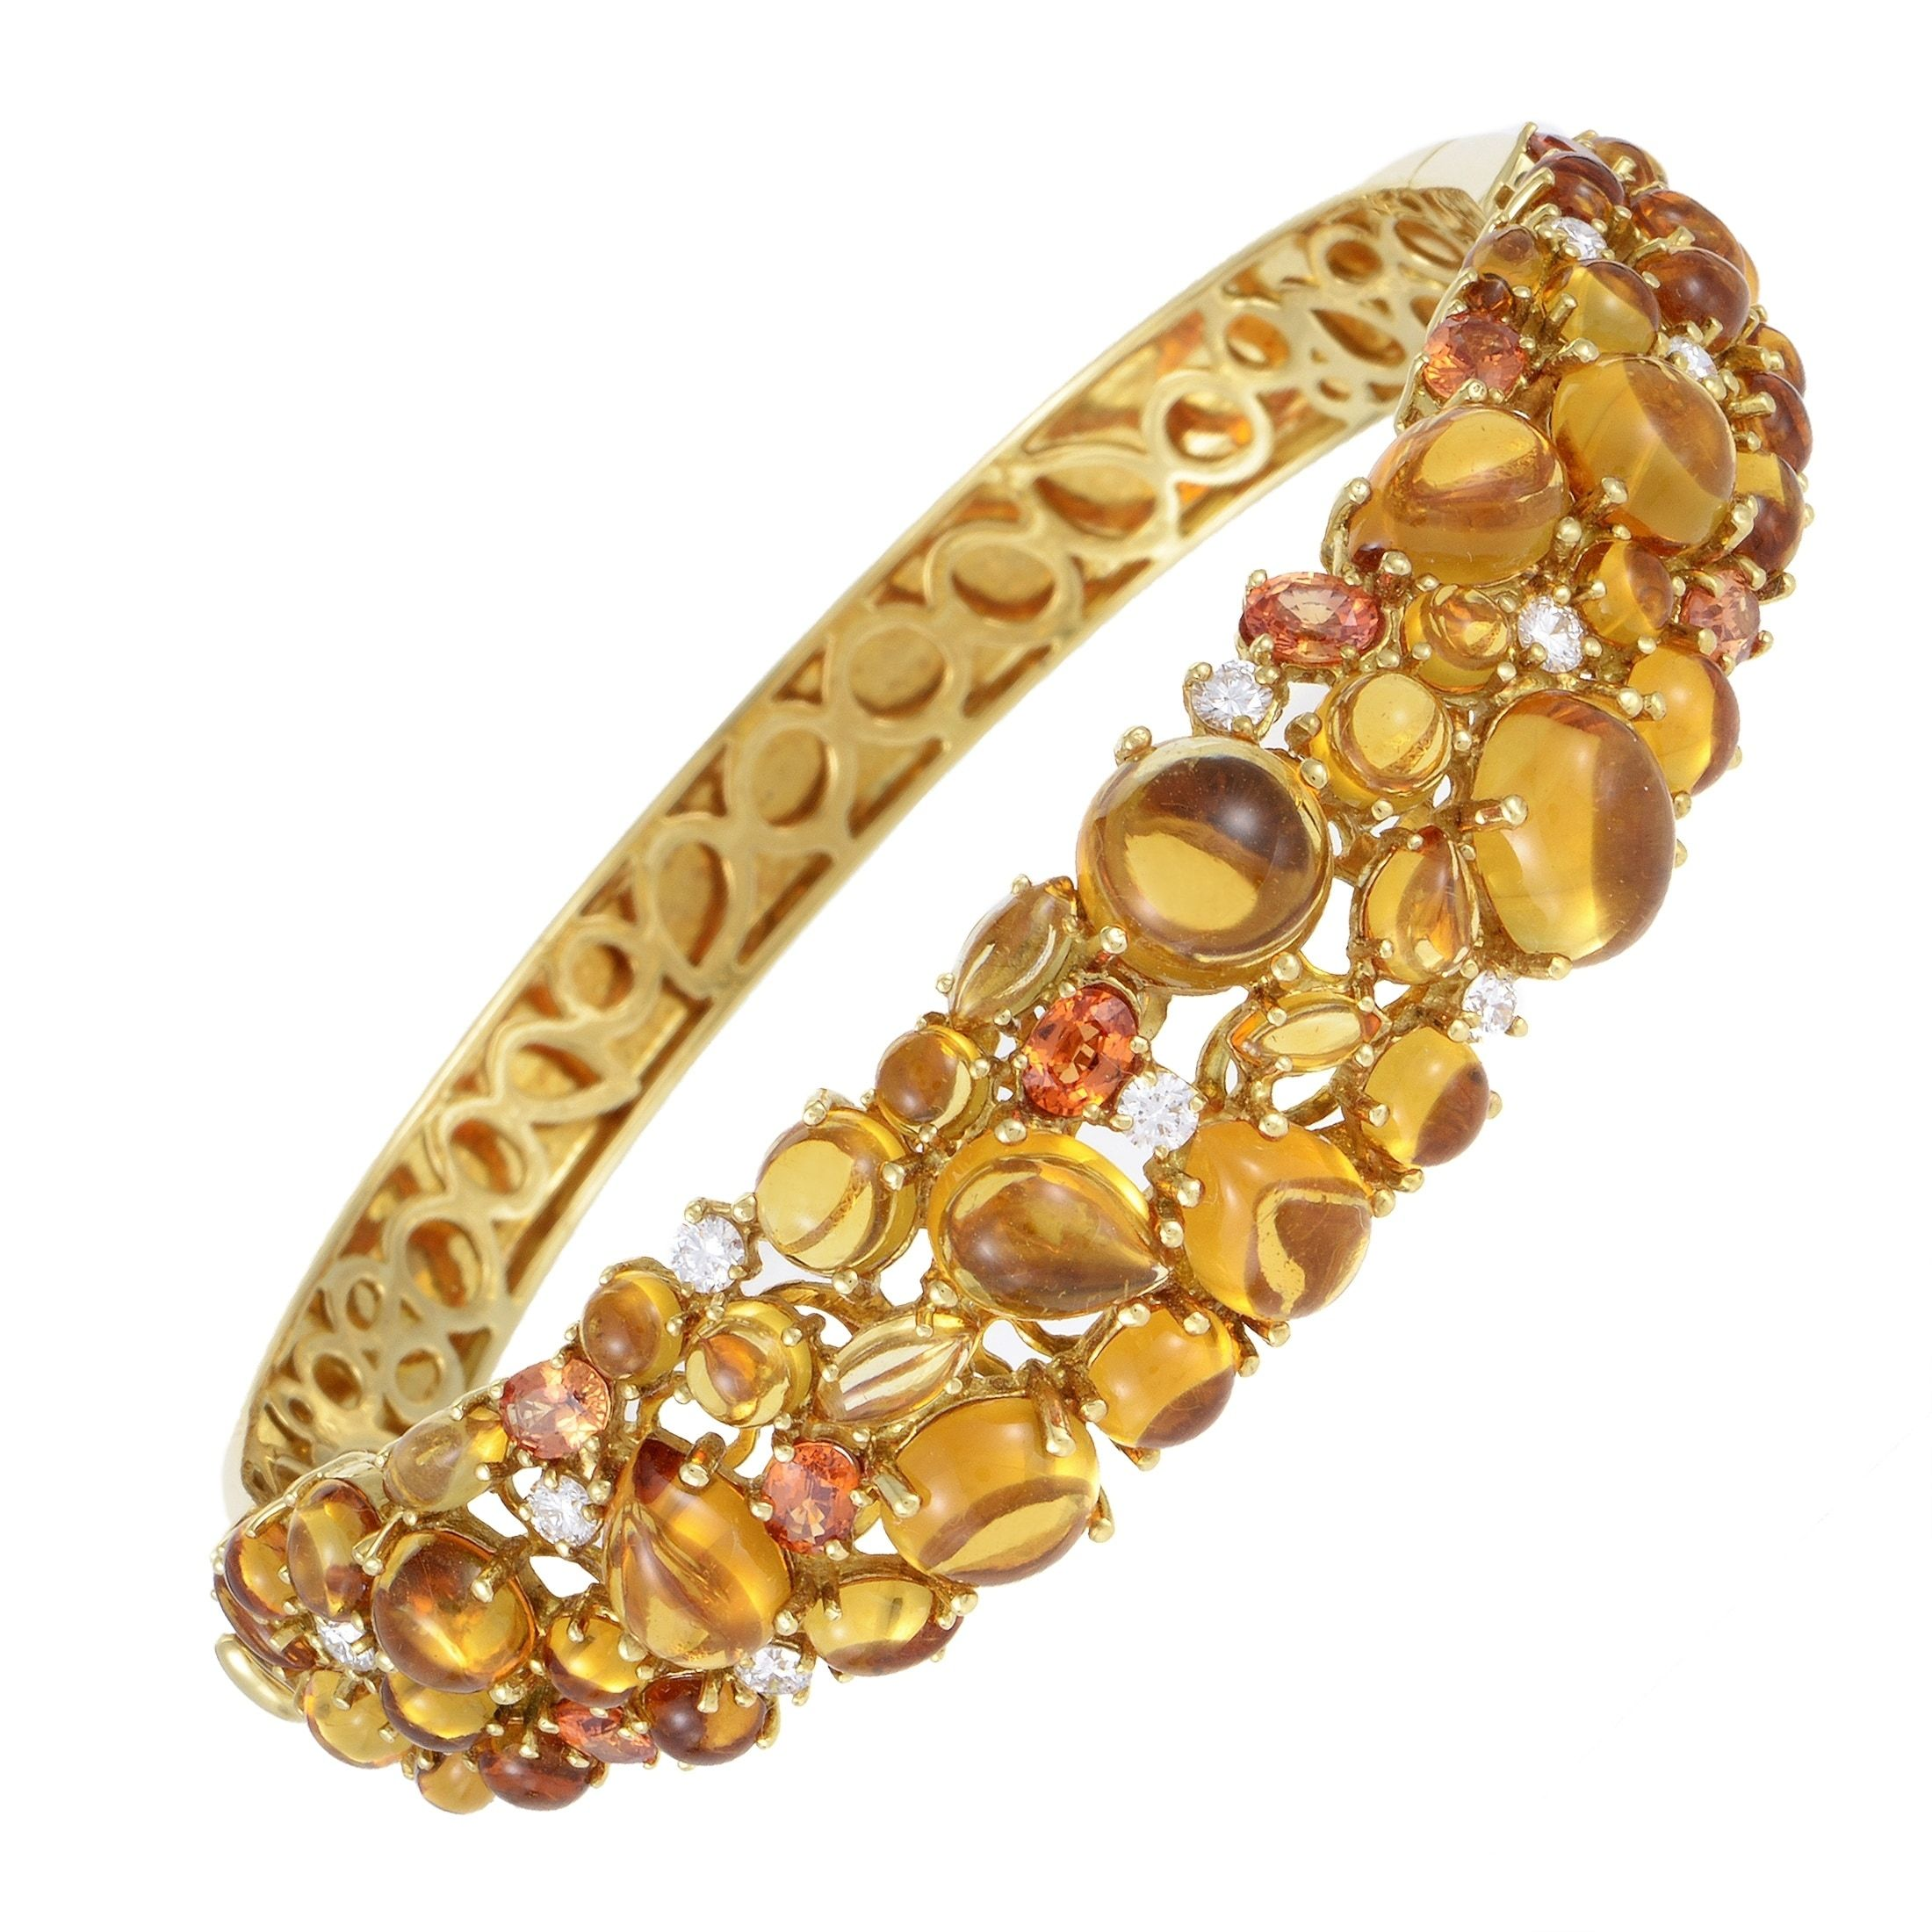 brands gold bangle tourmaline silver bangles karat bracelet pin david yellow yurman designer